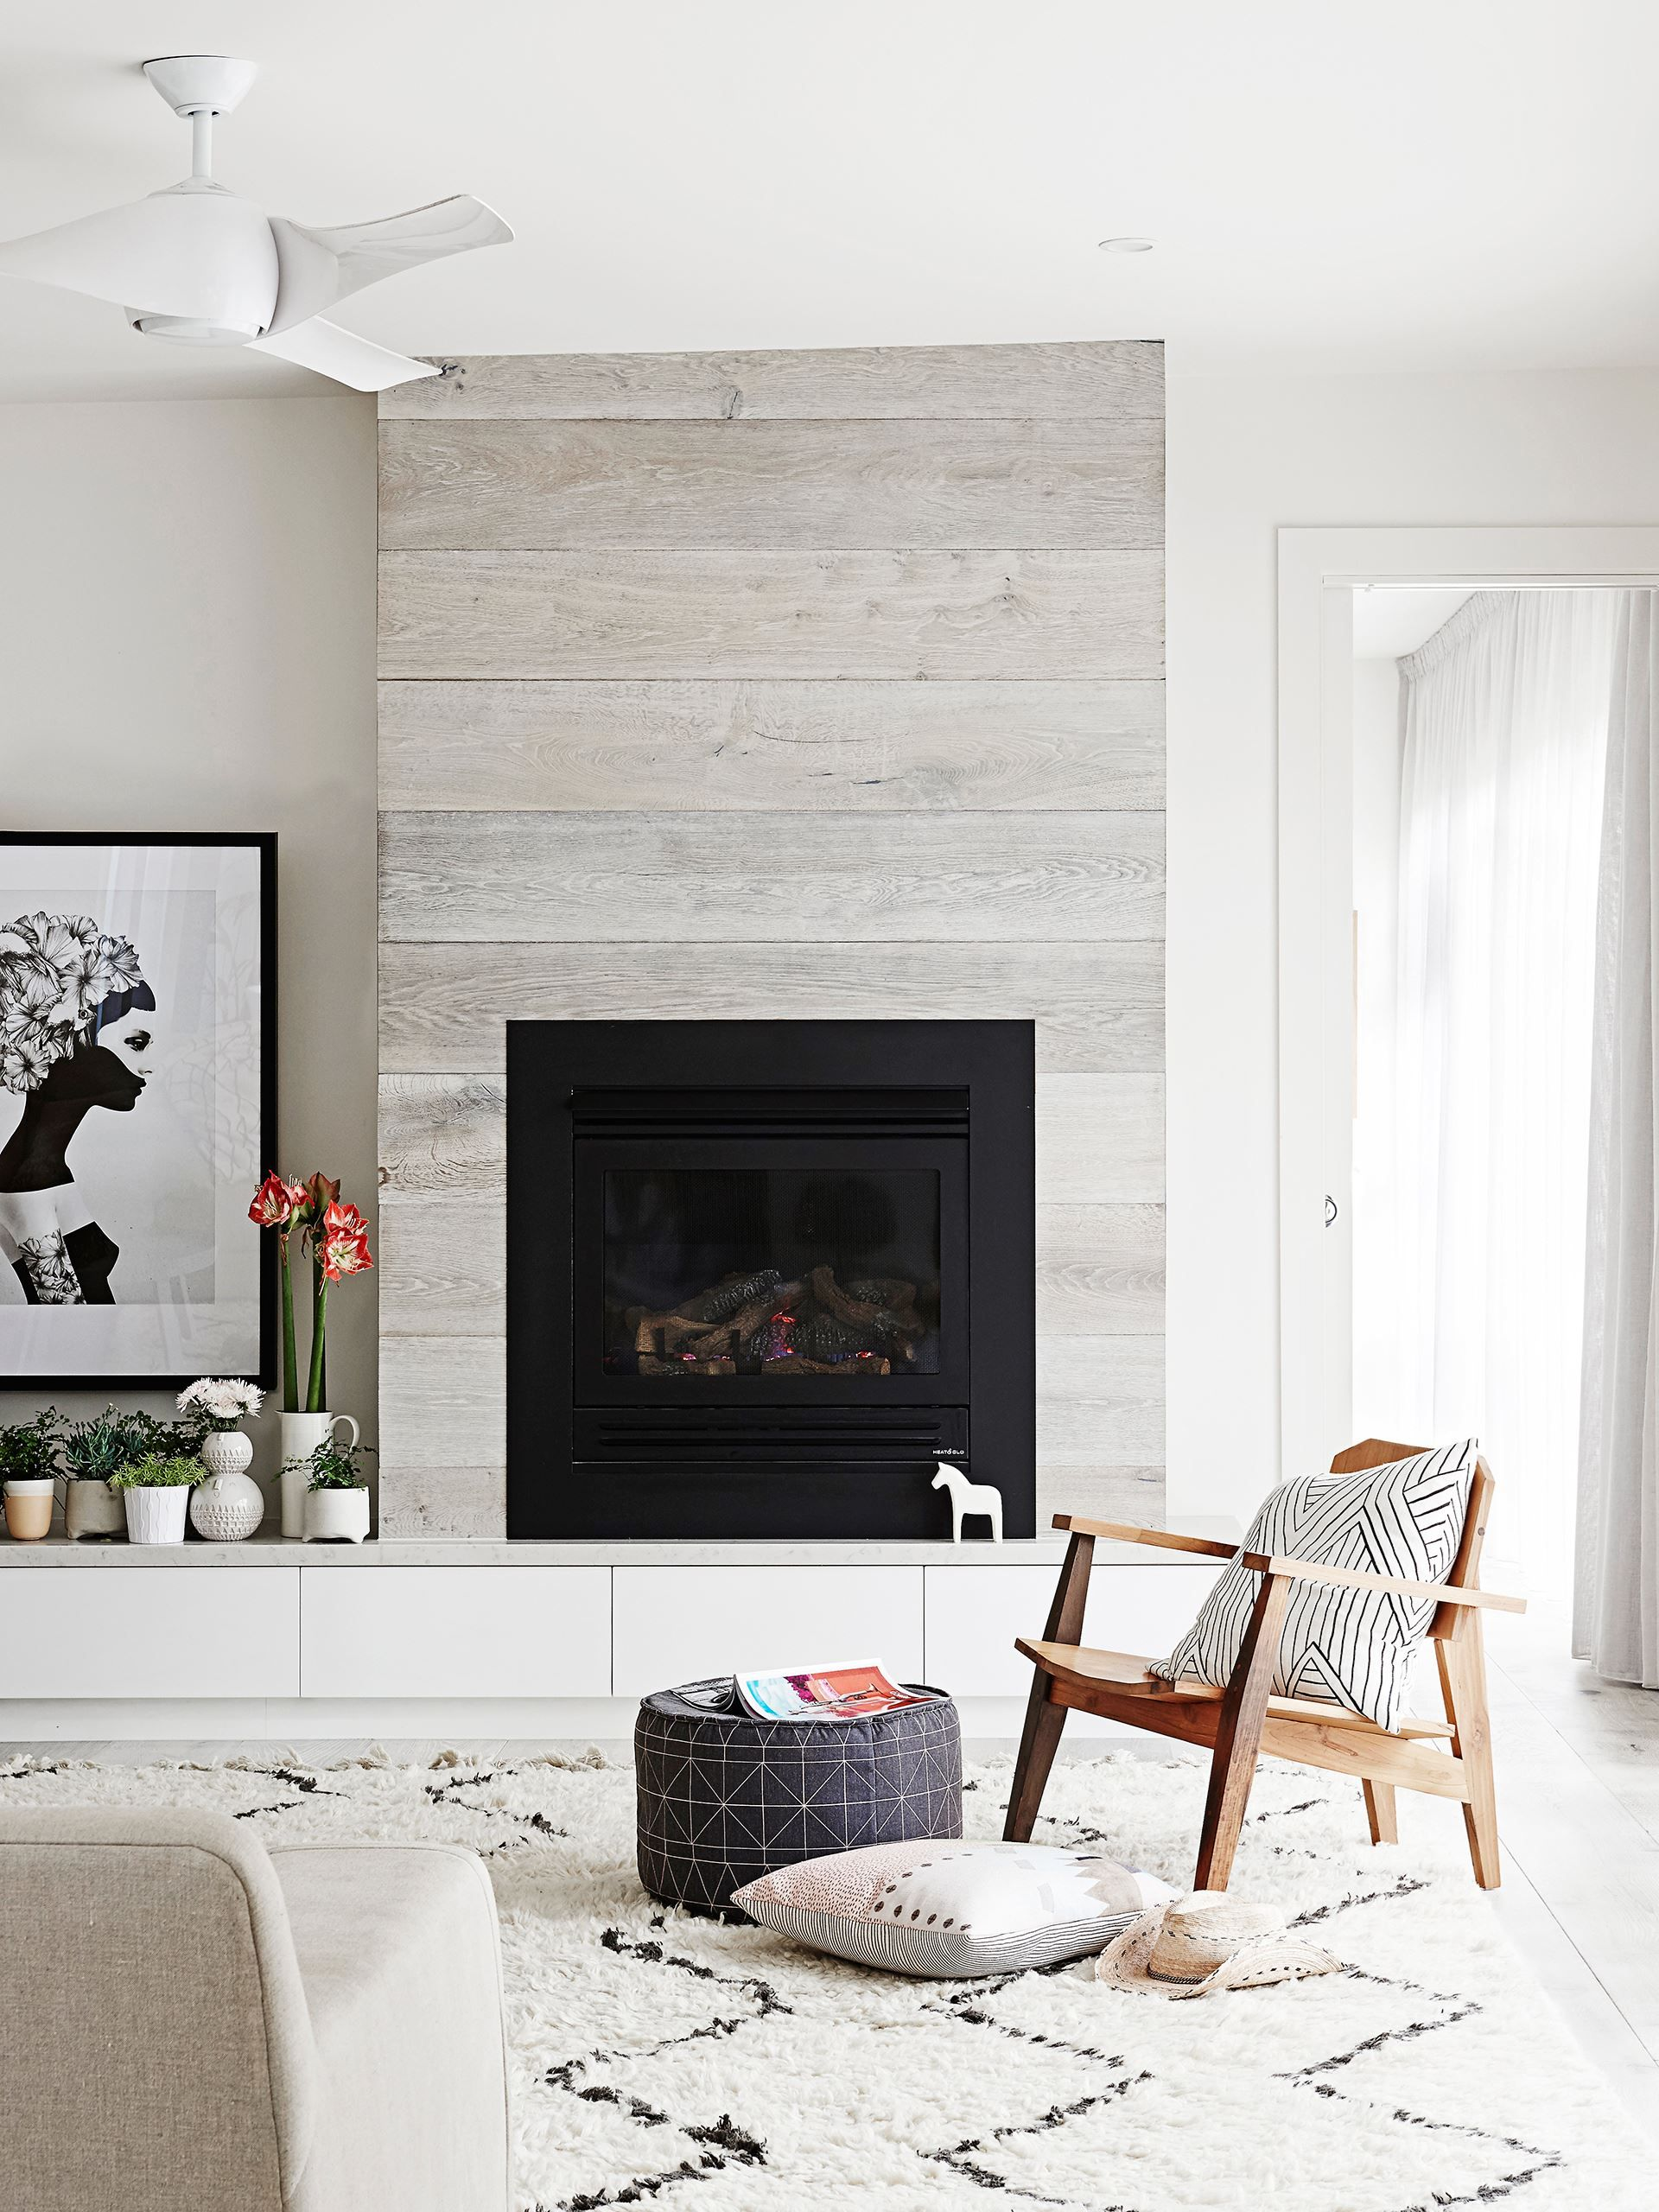 Arnold Stove and Fireplace Awesome Scandi Style Renovation Of A Californian Bungalow